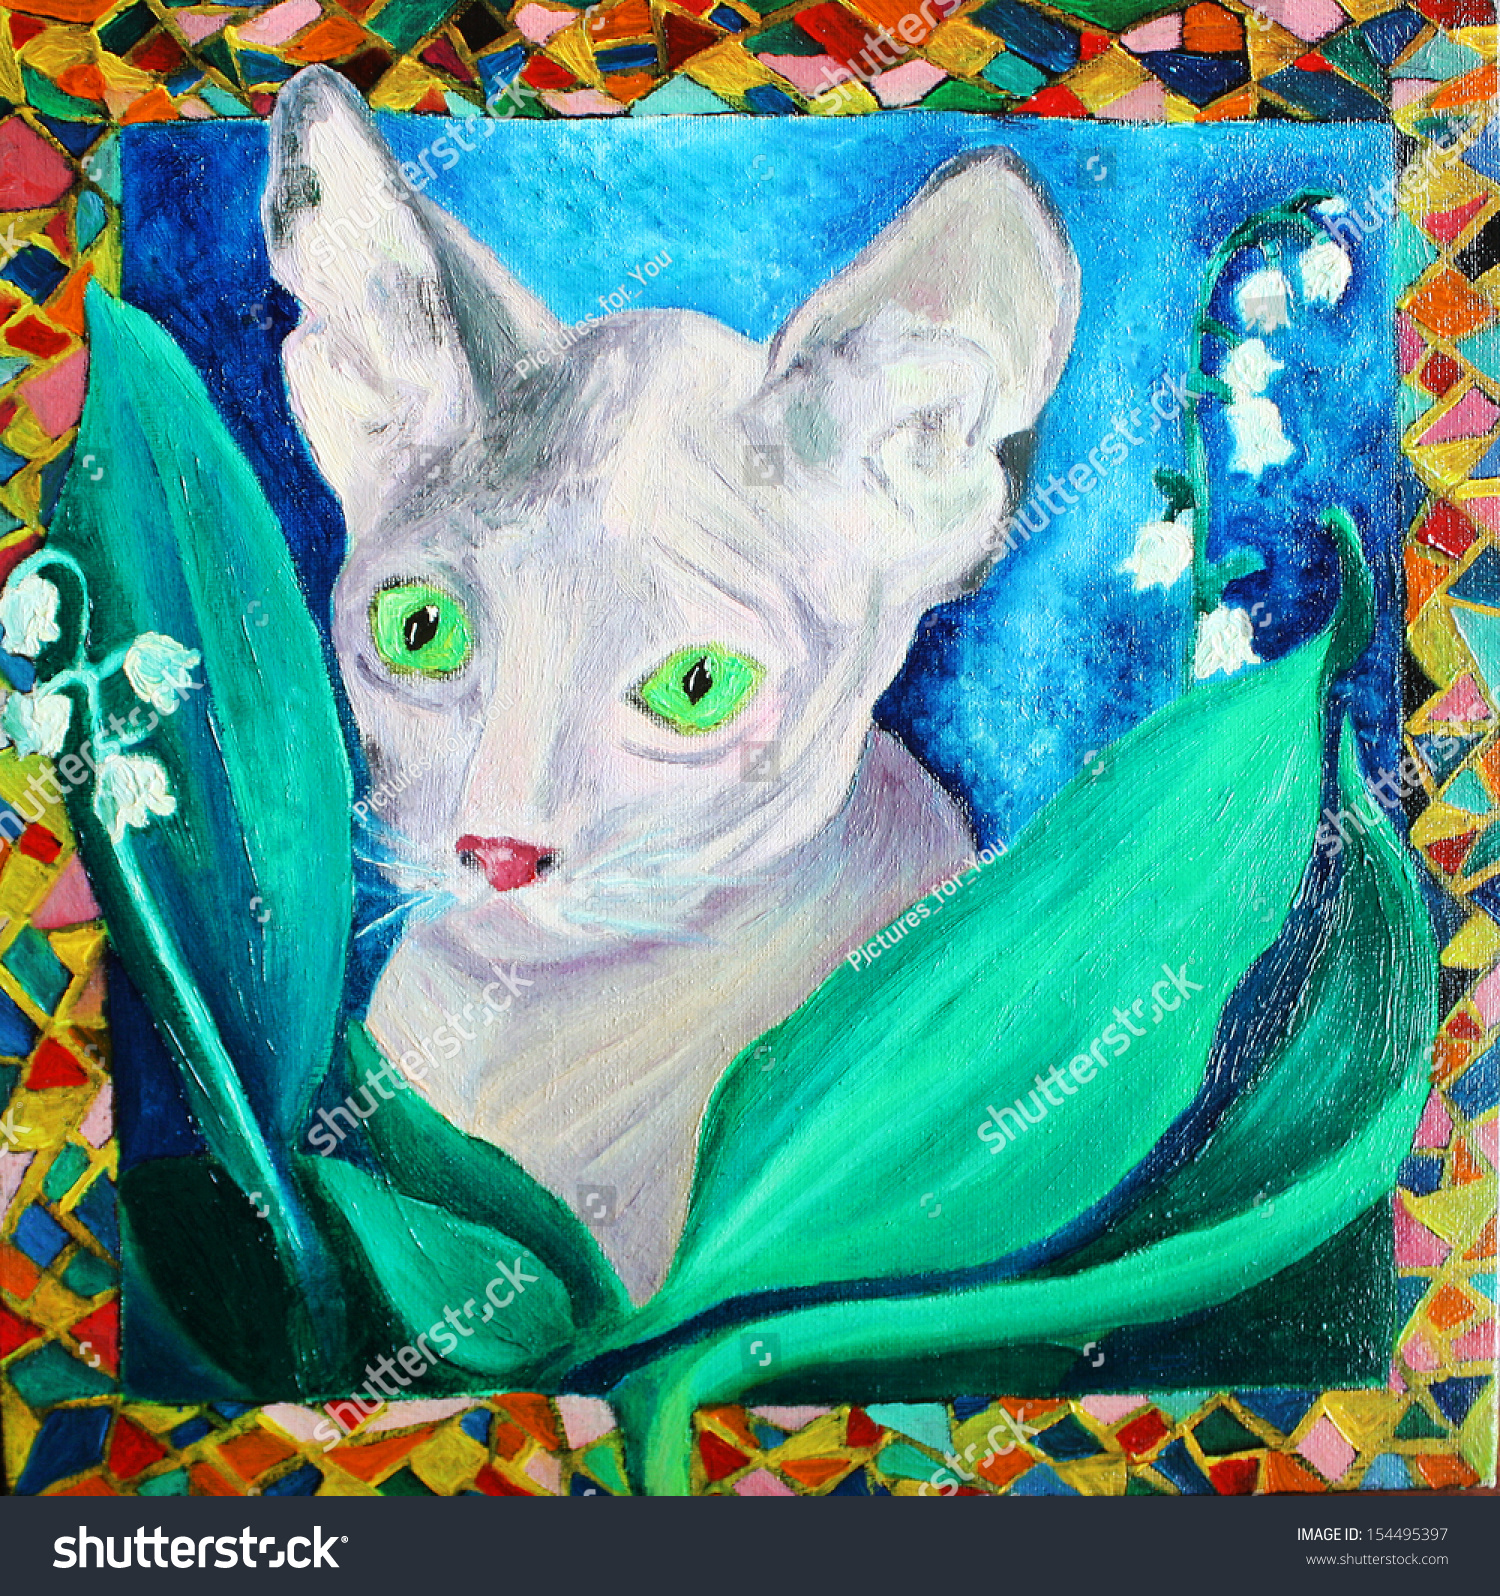 Sphinx beautiful grey cat green eyes stock illustration 154495397 beautiful grey cat with green eyes and lily of the valley flowers and leaves izmirmasajfo